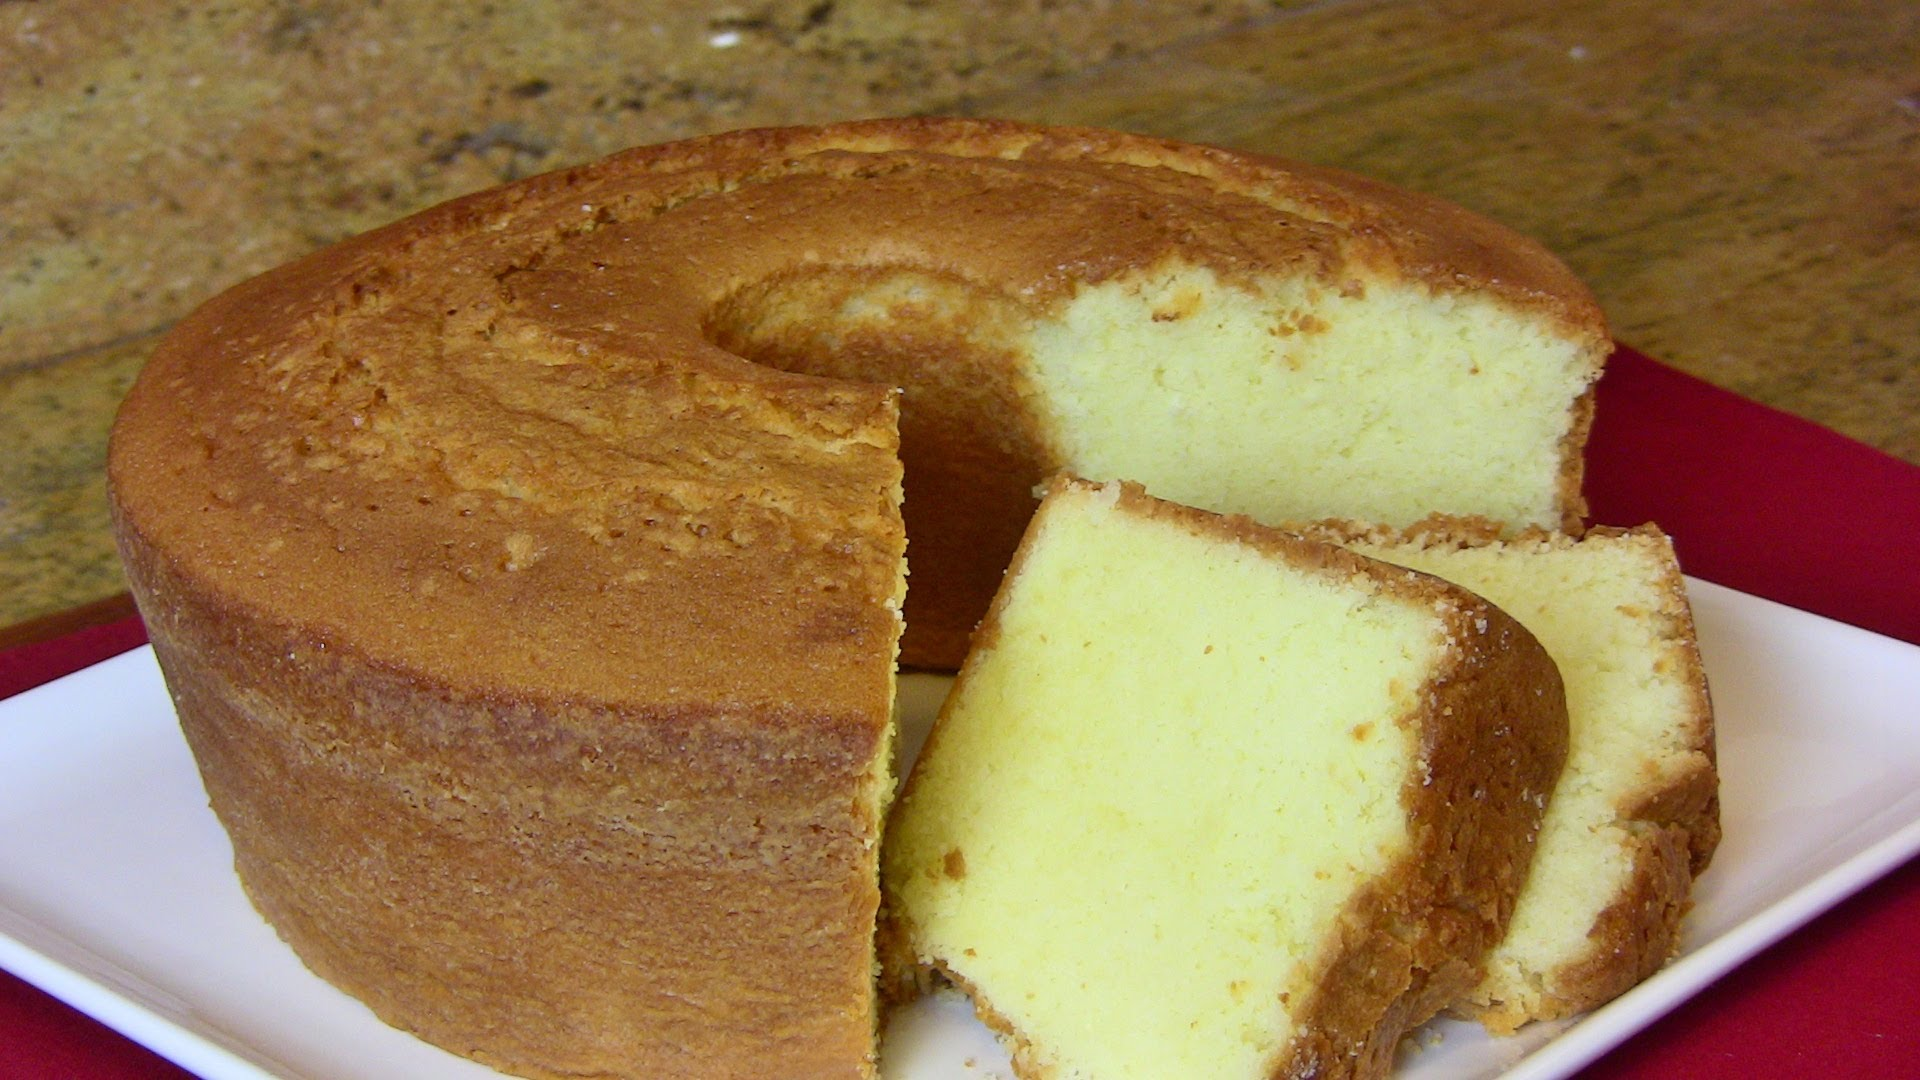 The Original Pound Cake